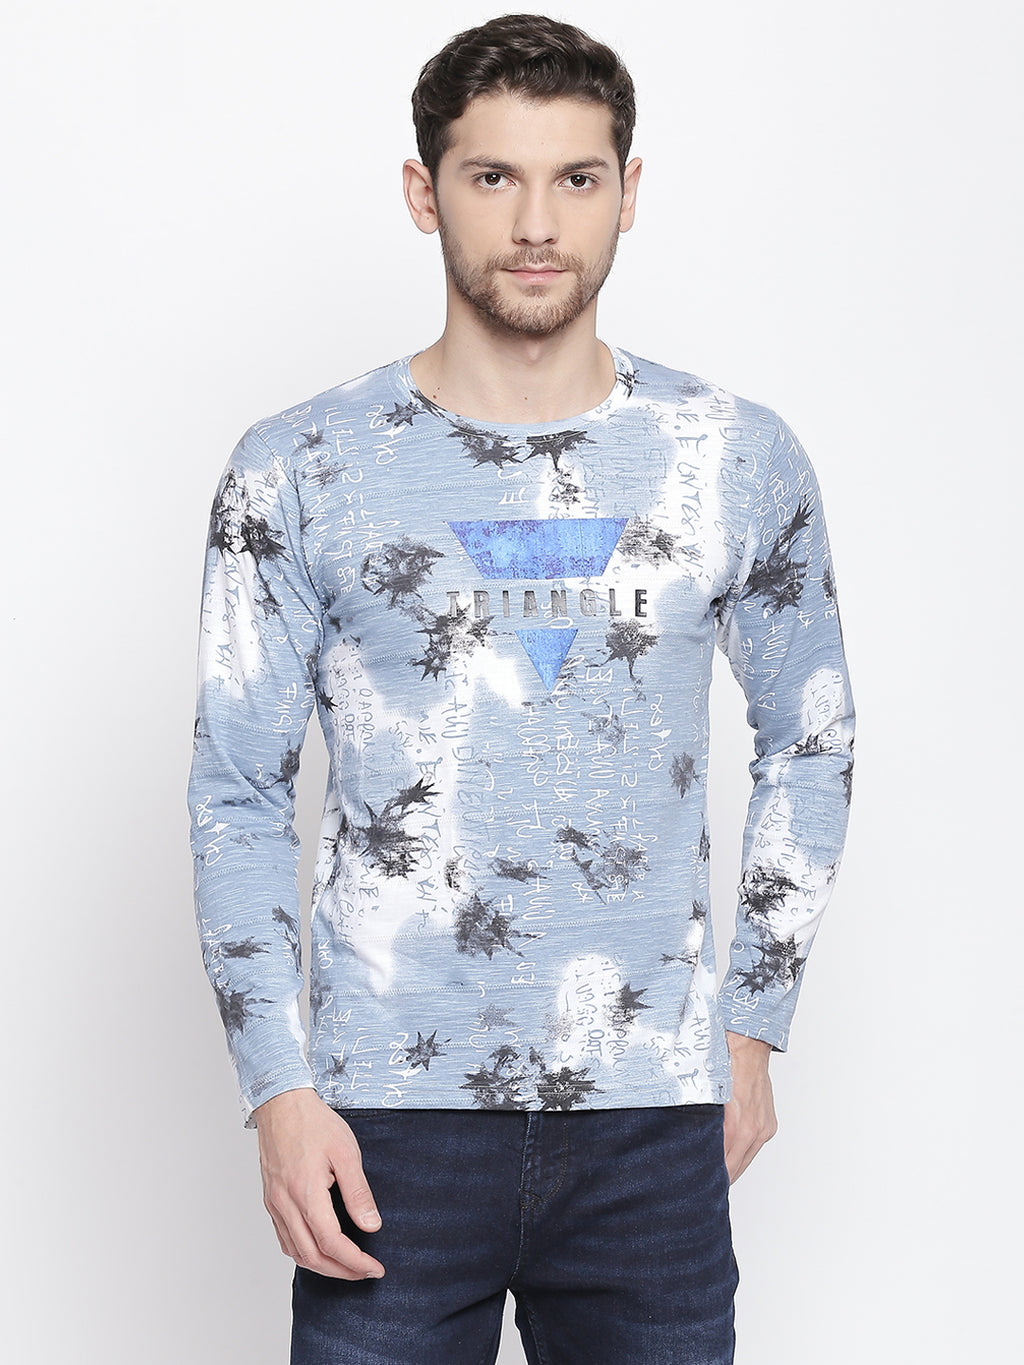 ZIDO Printed Men's T-Shirt 9359